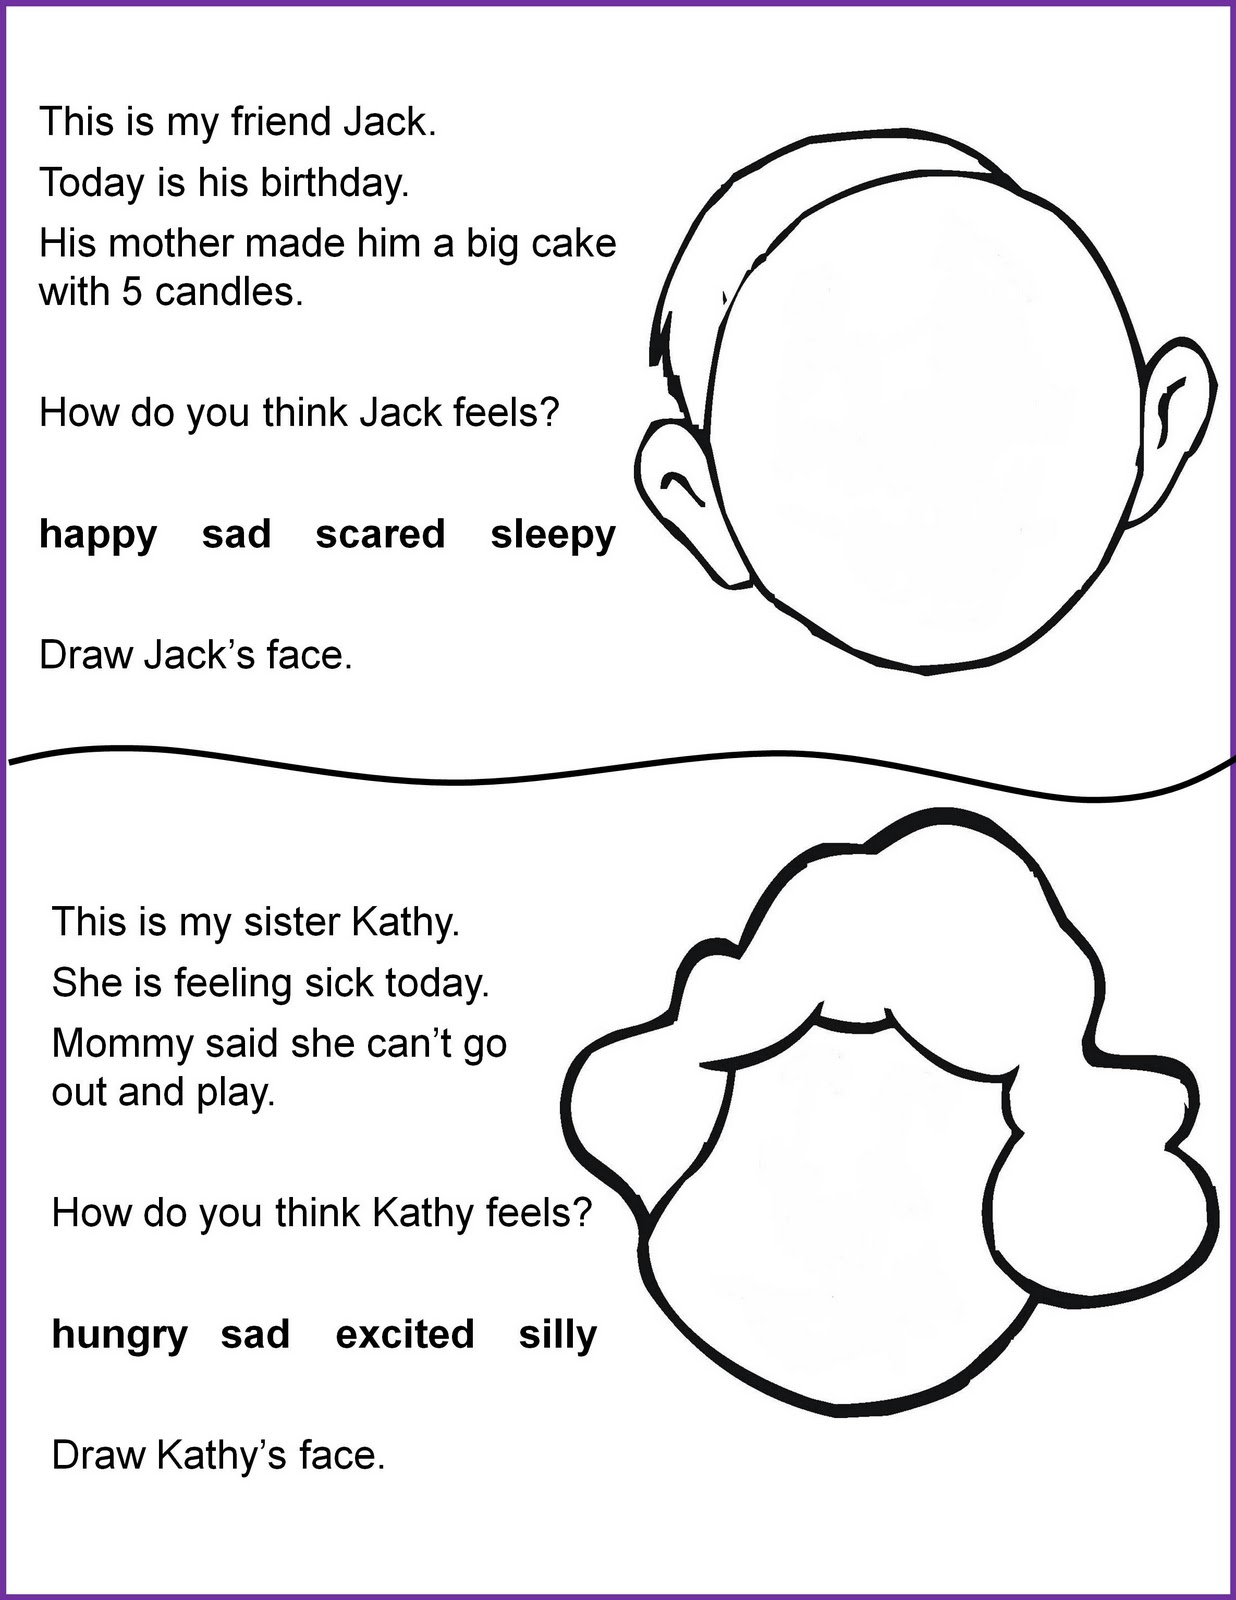 Free Worksheet Following Directions Worksheets following directions worksheets worksheet workbook site nonna and me reading comprehension activity